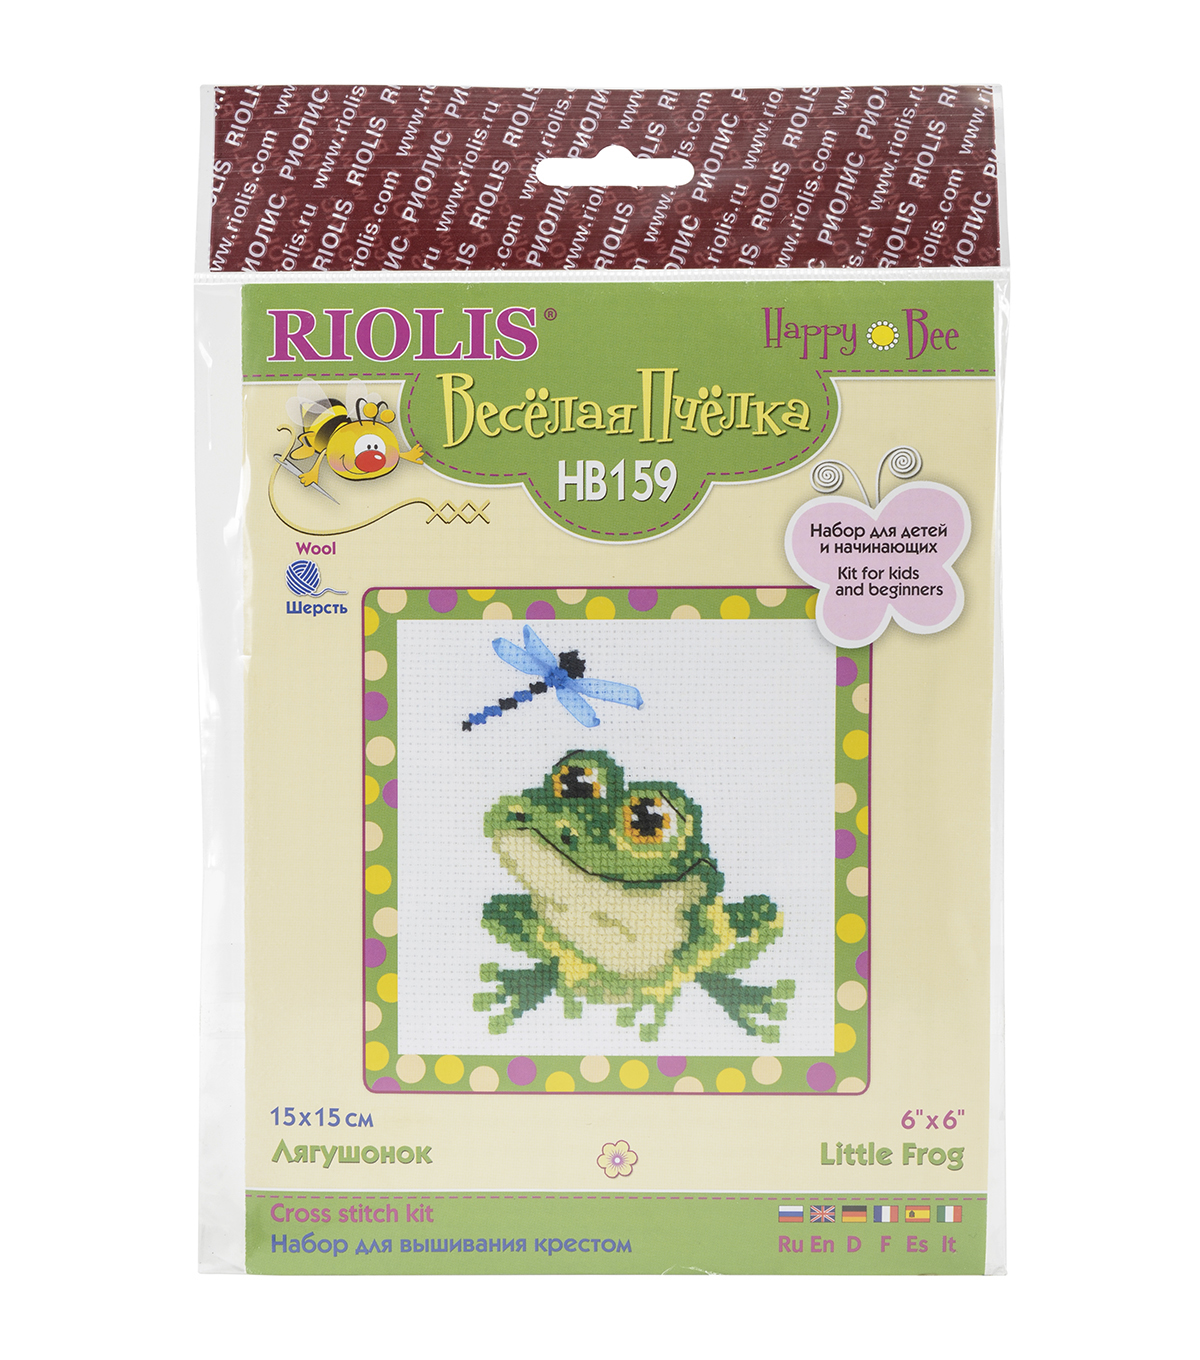 Riolis Counted Cross Stitch Kit-Little Frog